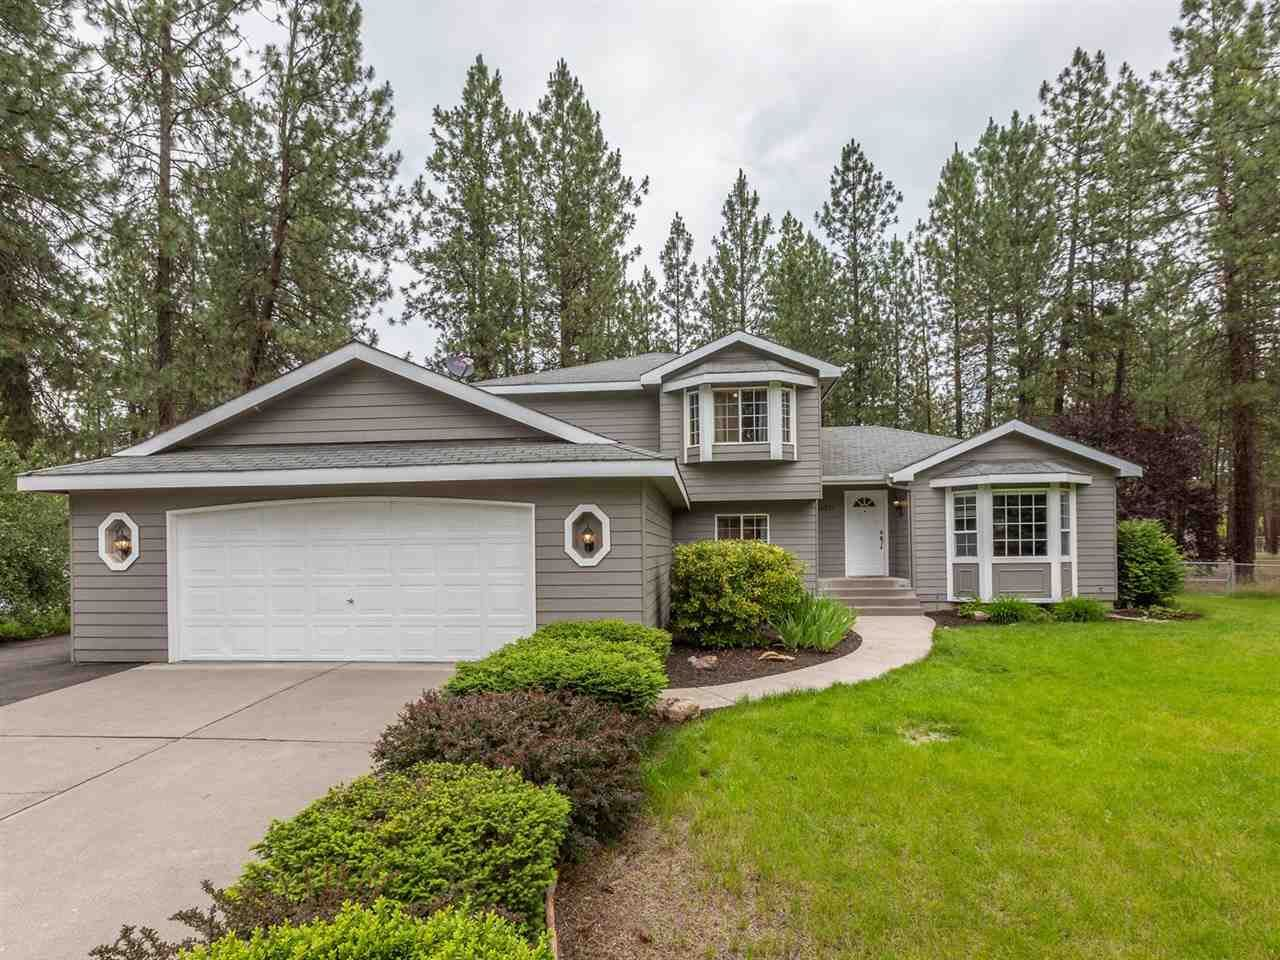 16925 N Hummingbird Ln, Nine Mile Falls, WA 99026 - #: 202017953